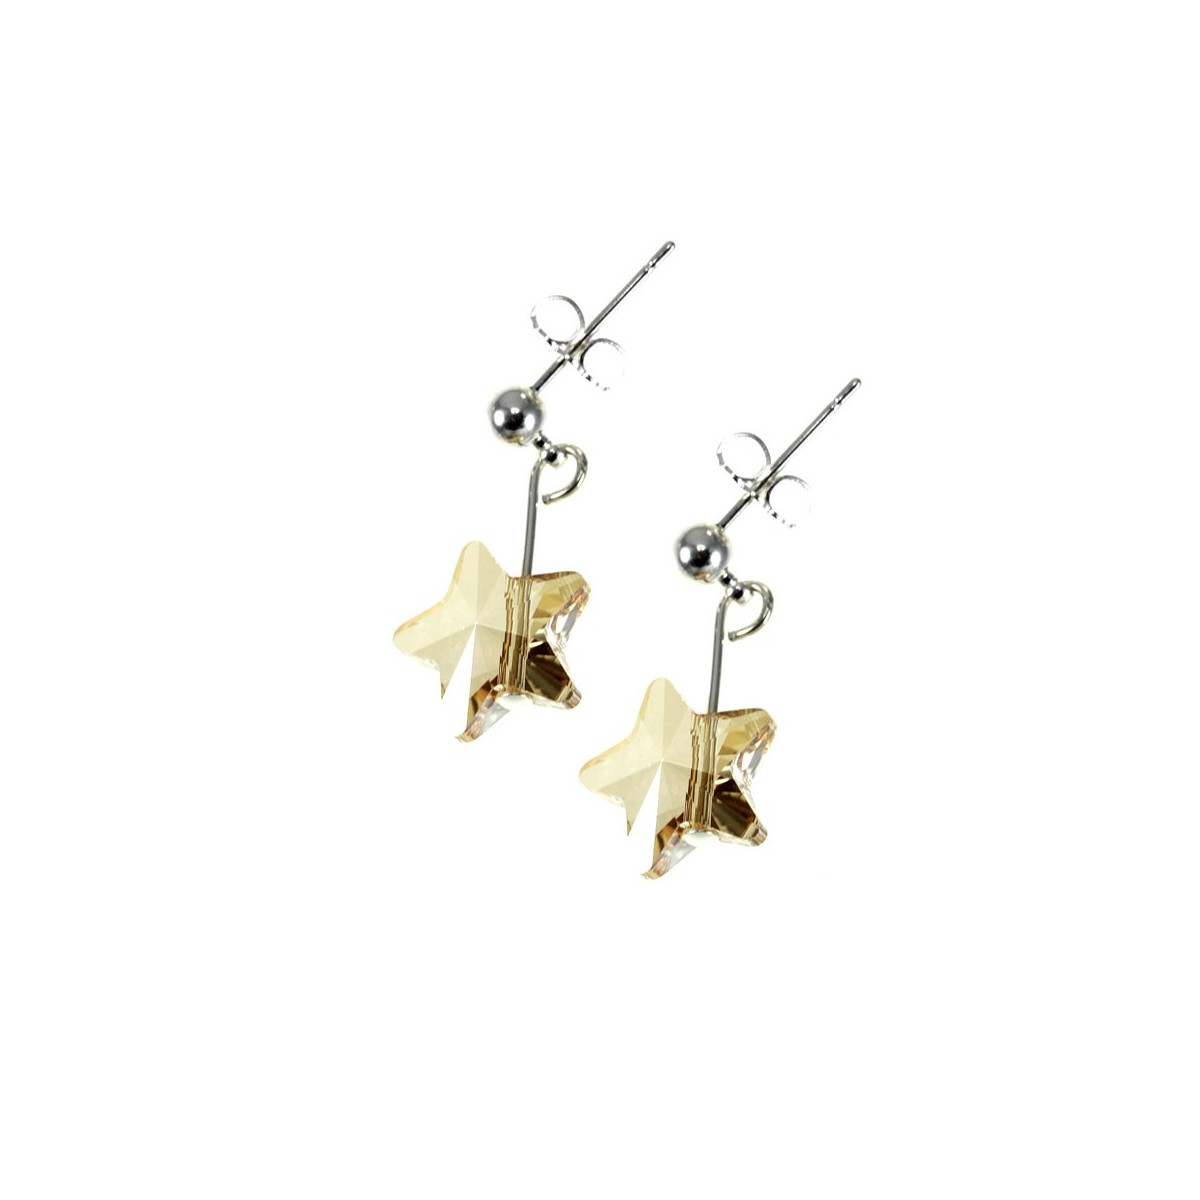 Boucles d'oreilles So Charm ornées d'une étoile golden made with crystal from Swarovski